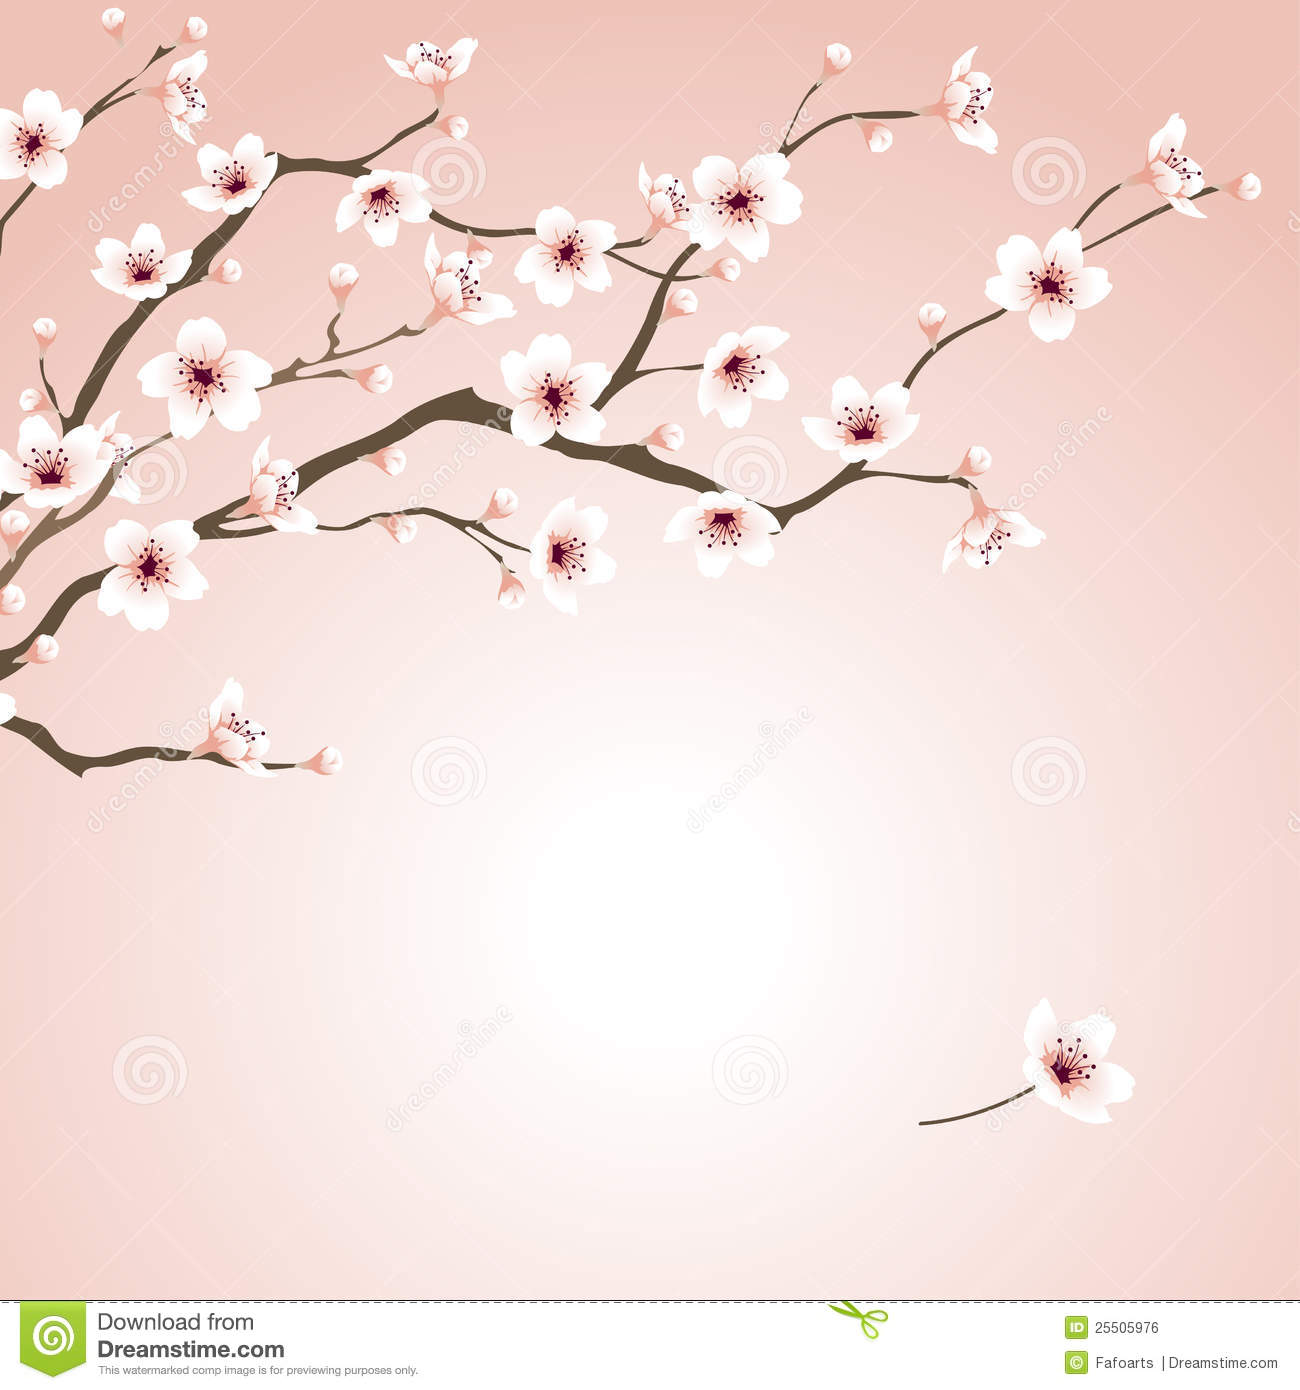 Nature background with blossoming sakura branch royalty free stock - Blossoming Cherry Tree Royalty Free Stock Image Image